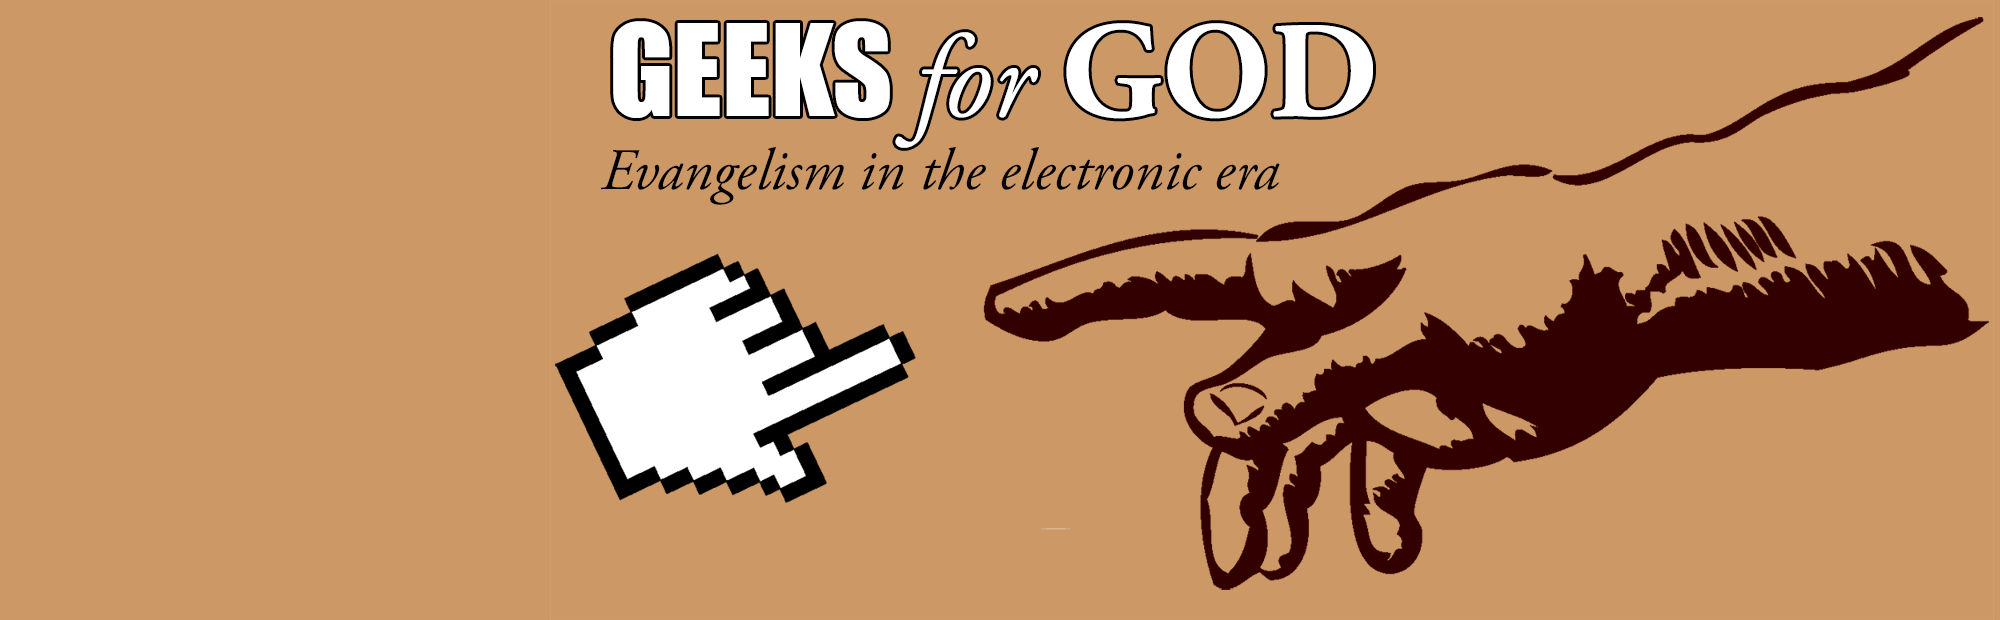 Evangelism in the Electronic Era